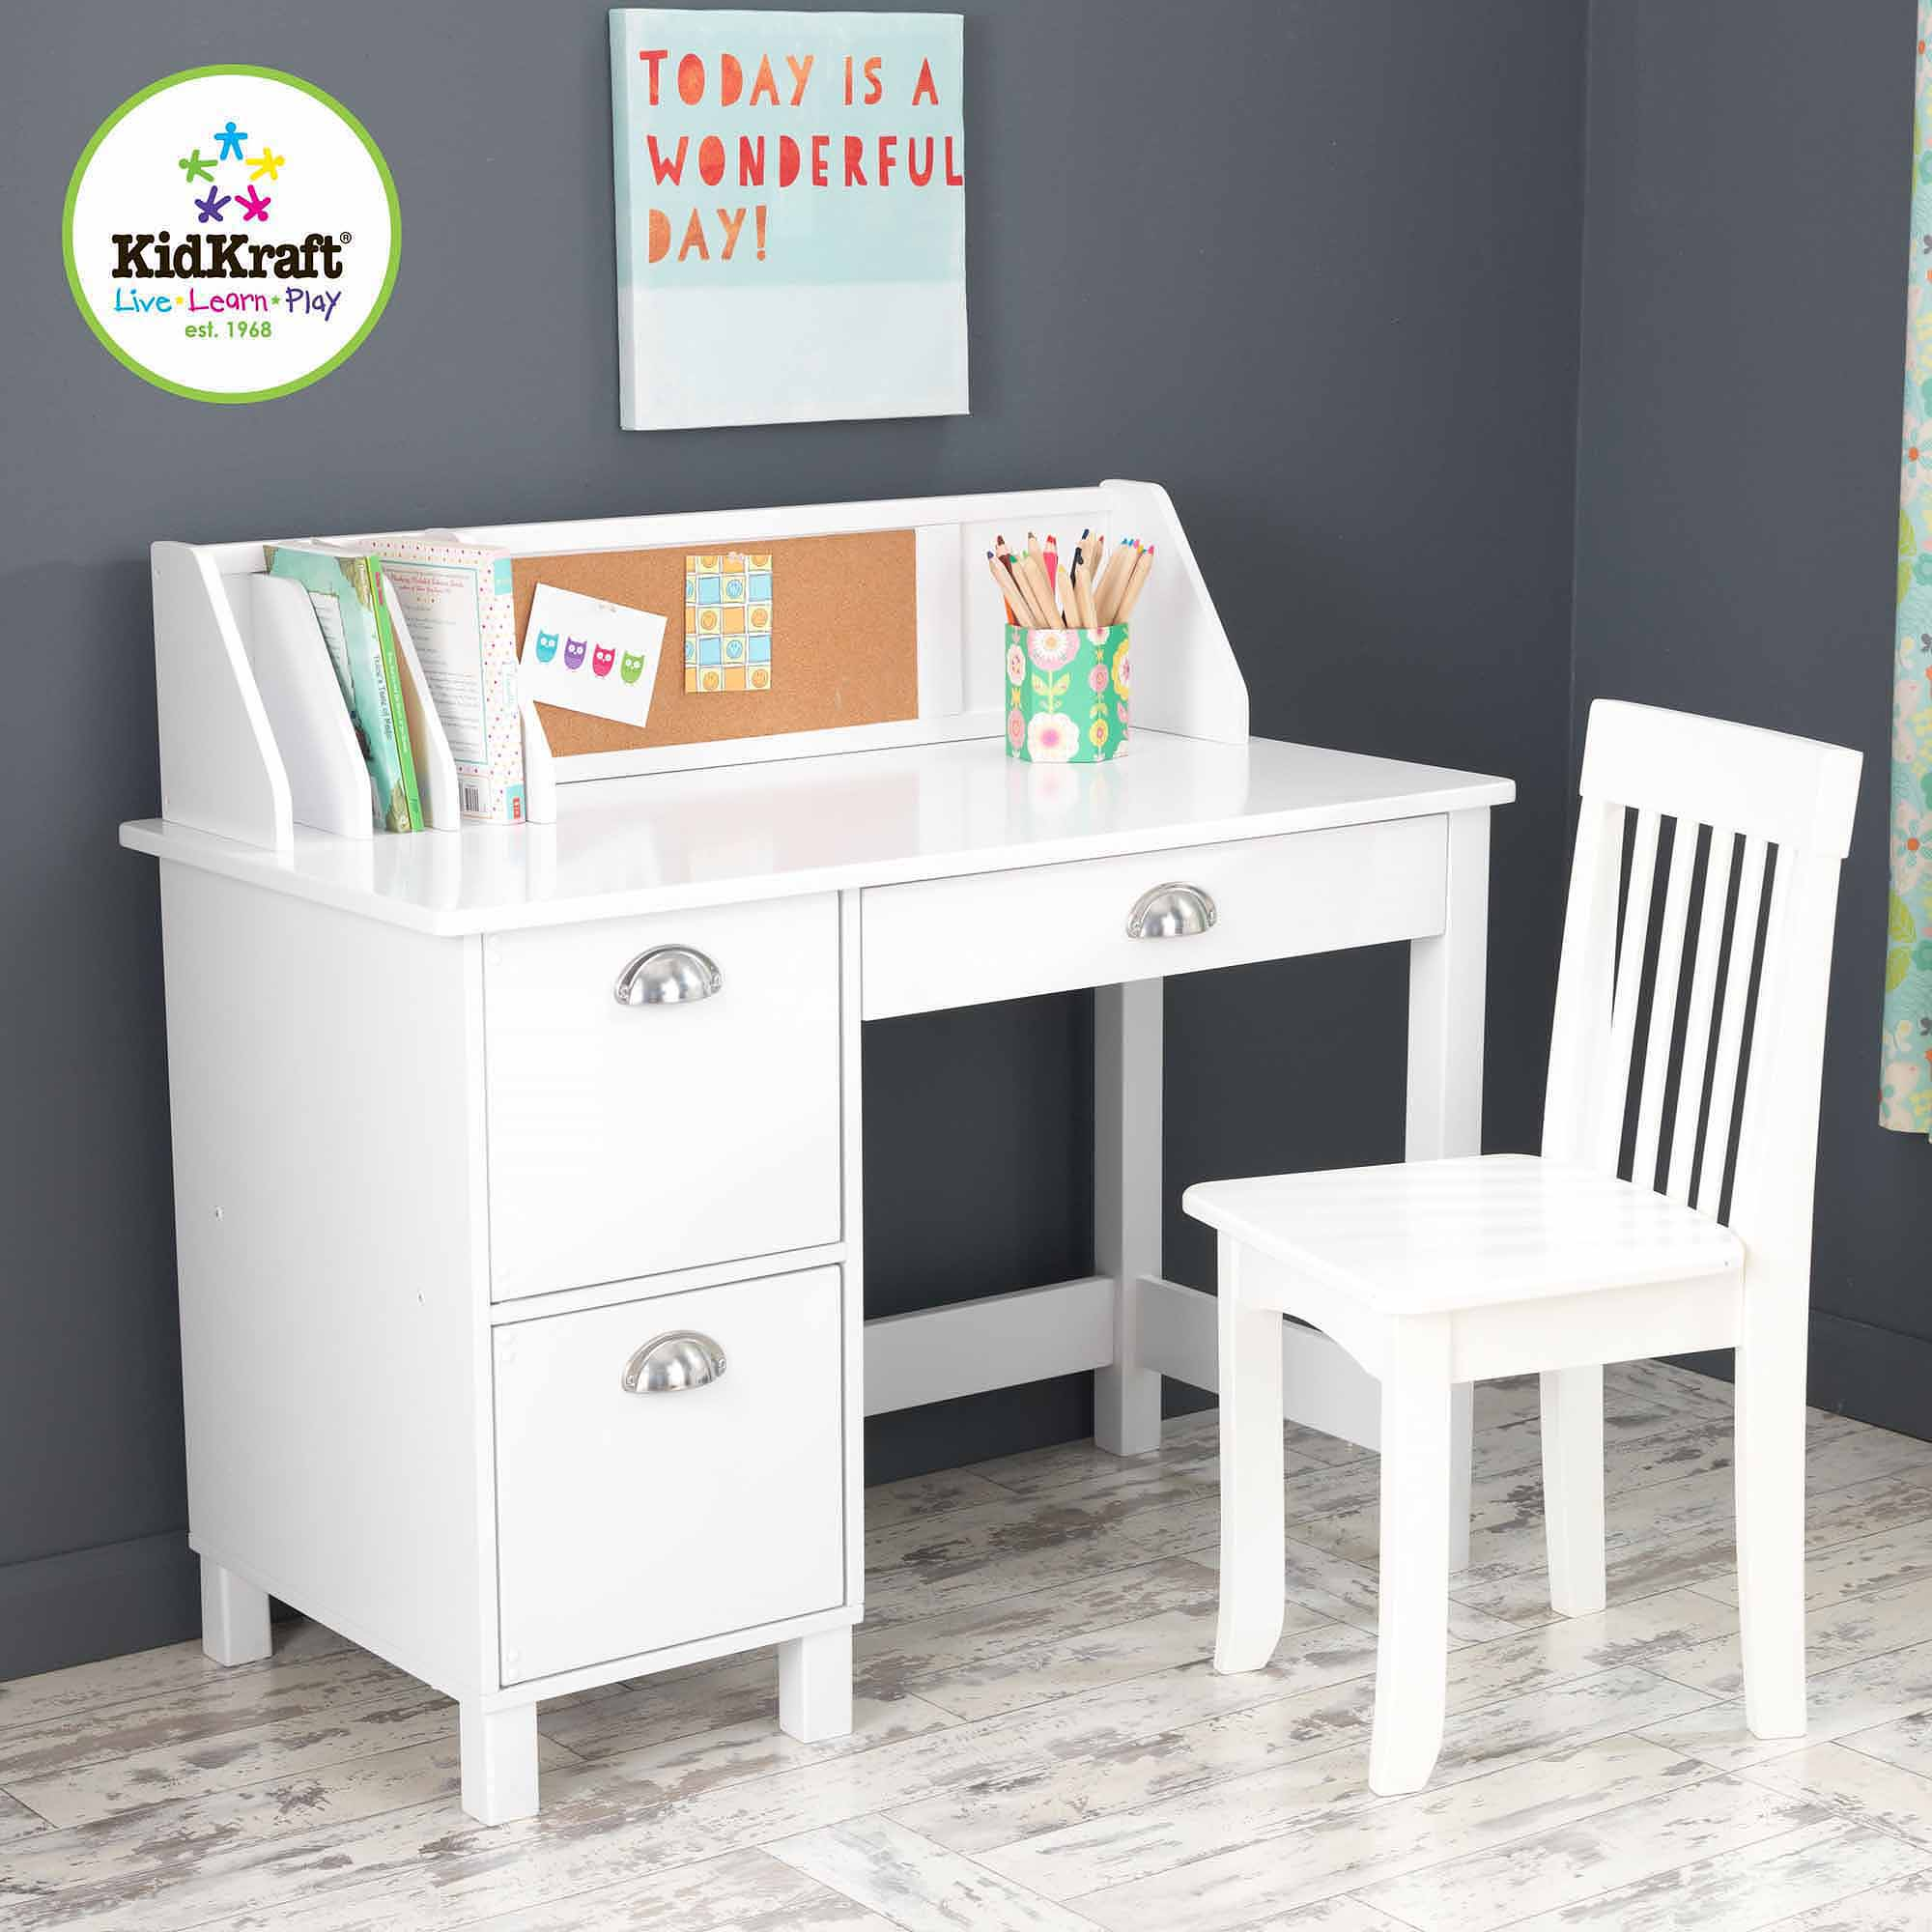 KidKraft Study Desk with Side Drawers, White